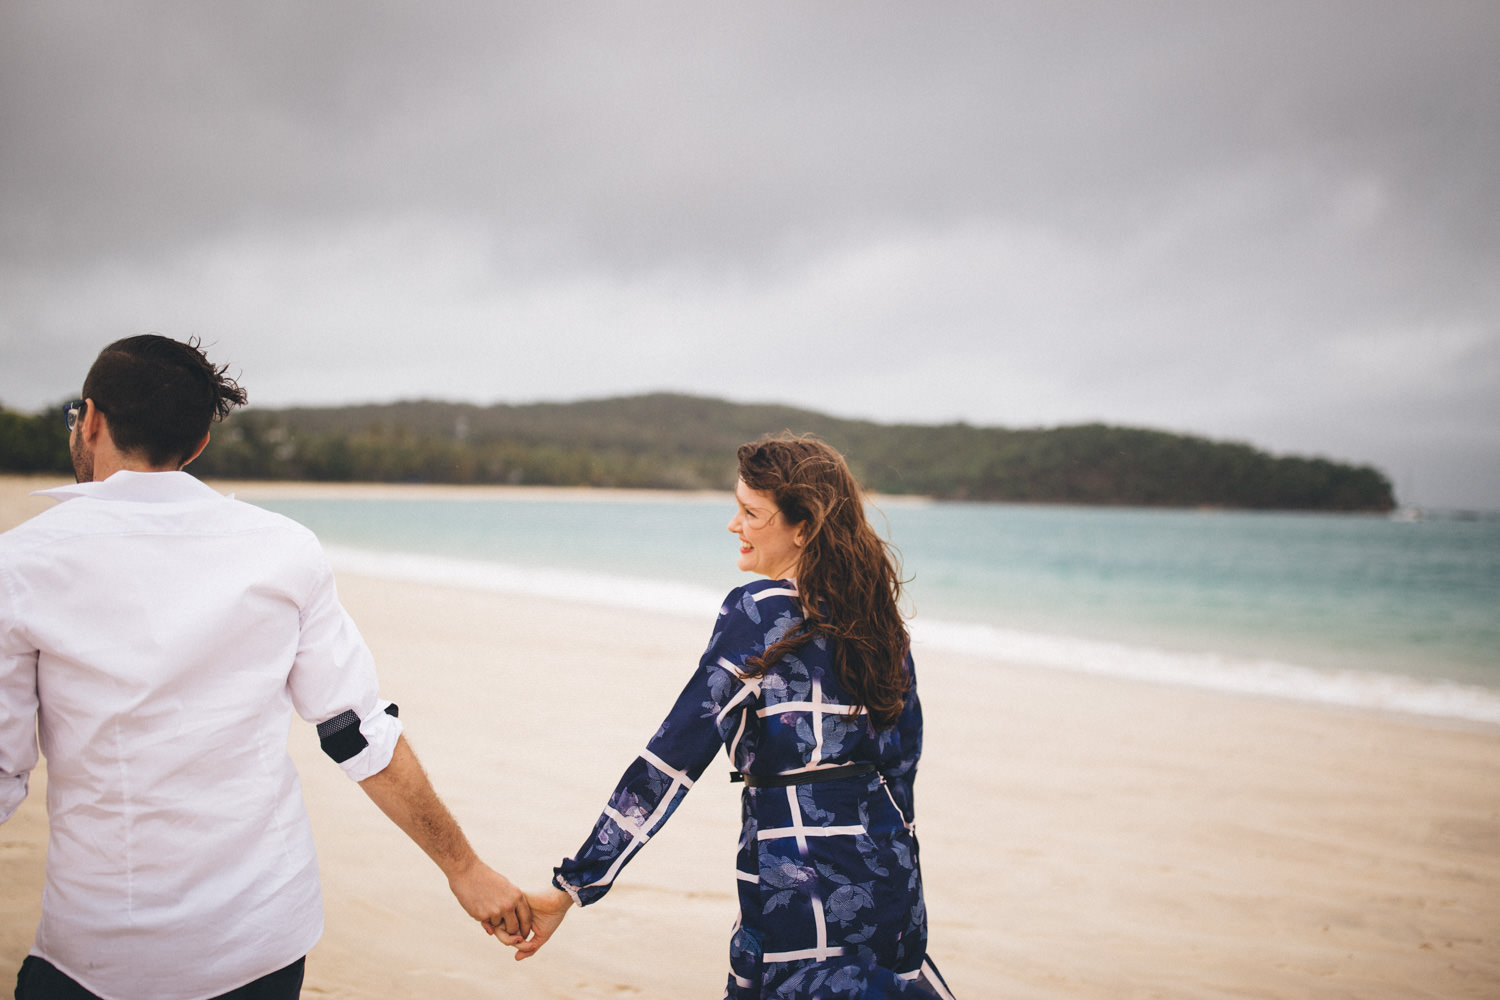 Rob-Kaity-Island-Engagement-Session-0042.jpg